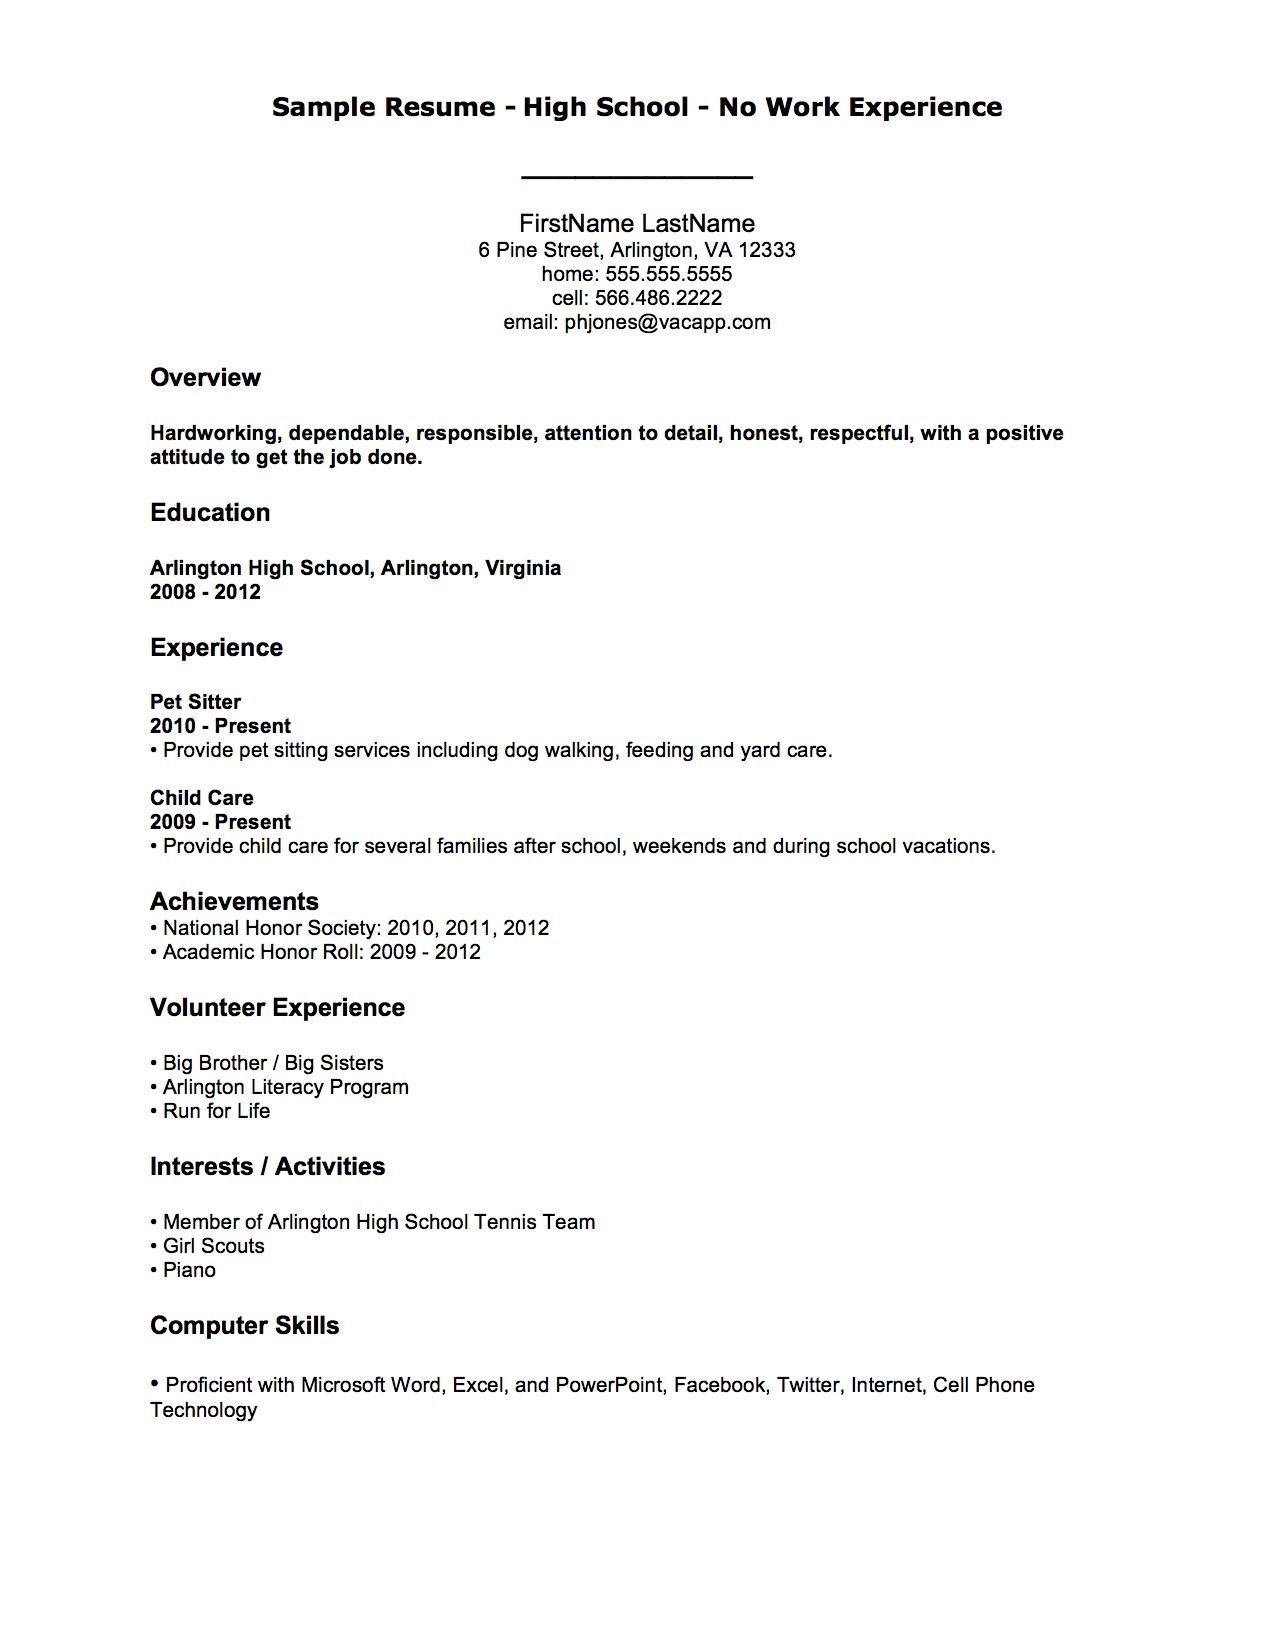 how to format work experience on a resume Parlobuenacocinaco